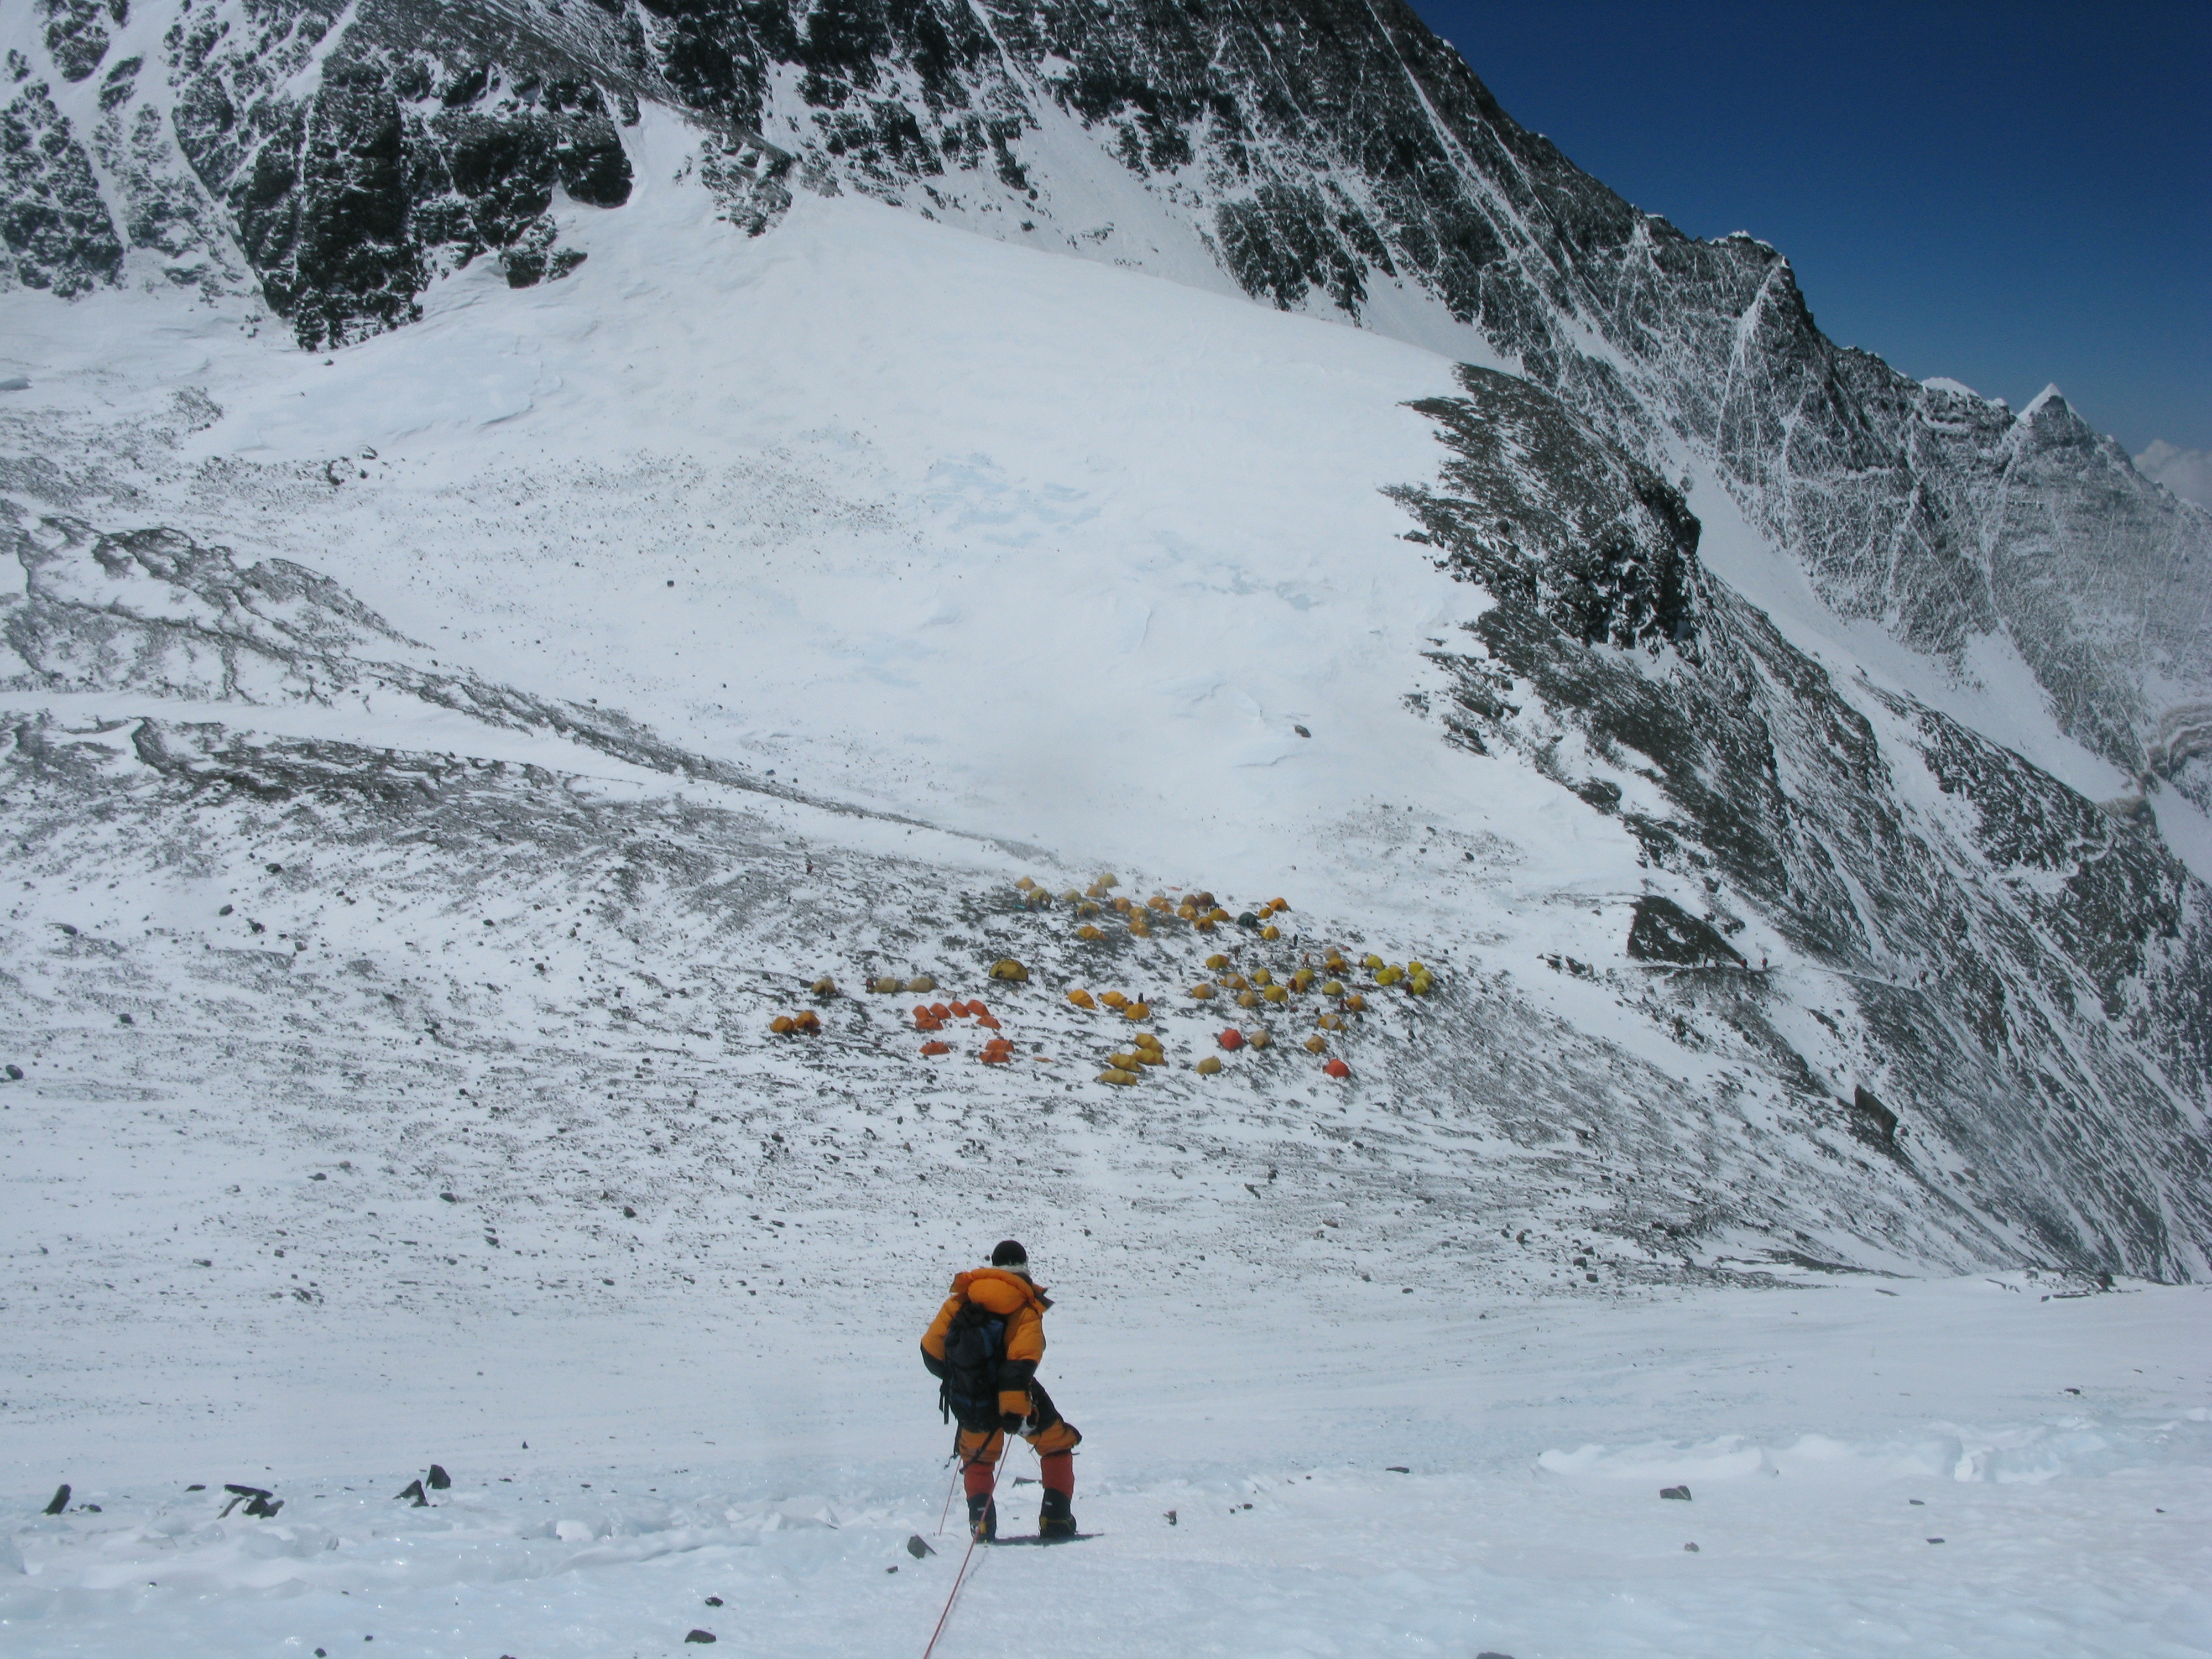 Is it hard to climb down from Mount Everest? - Quora